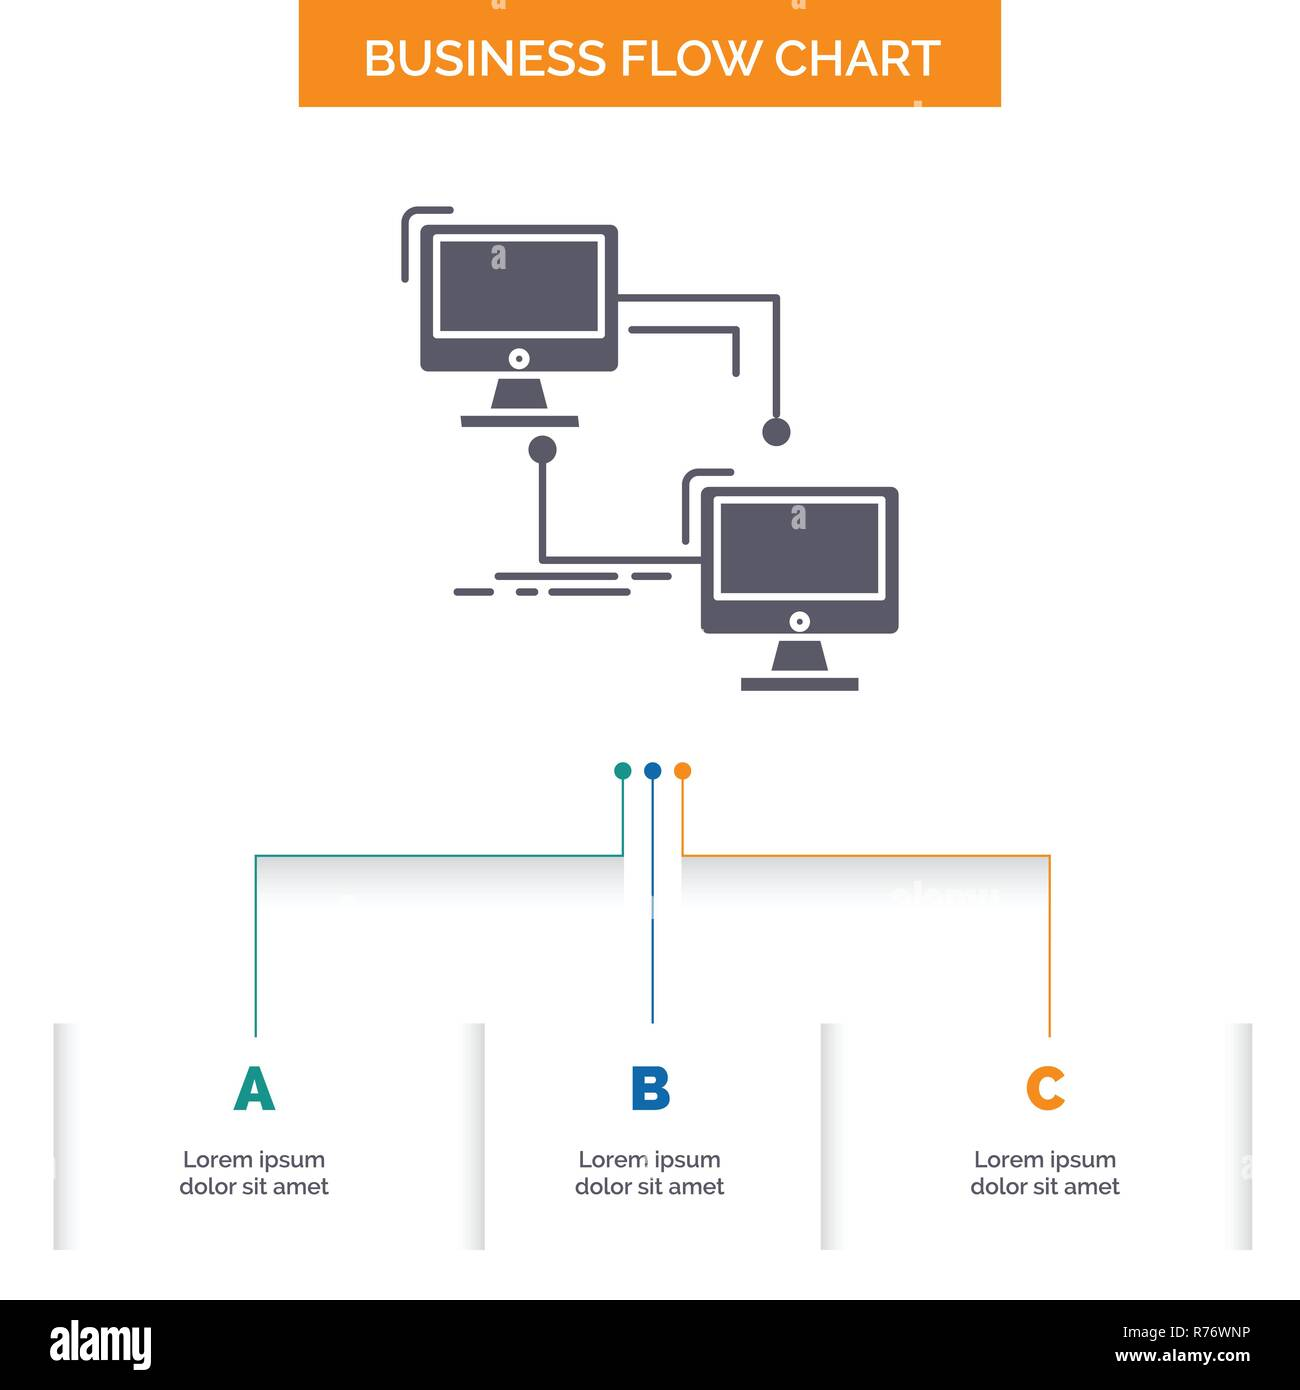 hight resolution of local lan connection sync computer business flow chart design with 3 steps glyph icon for presentation background template place for text